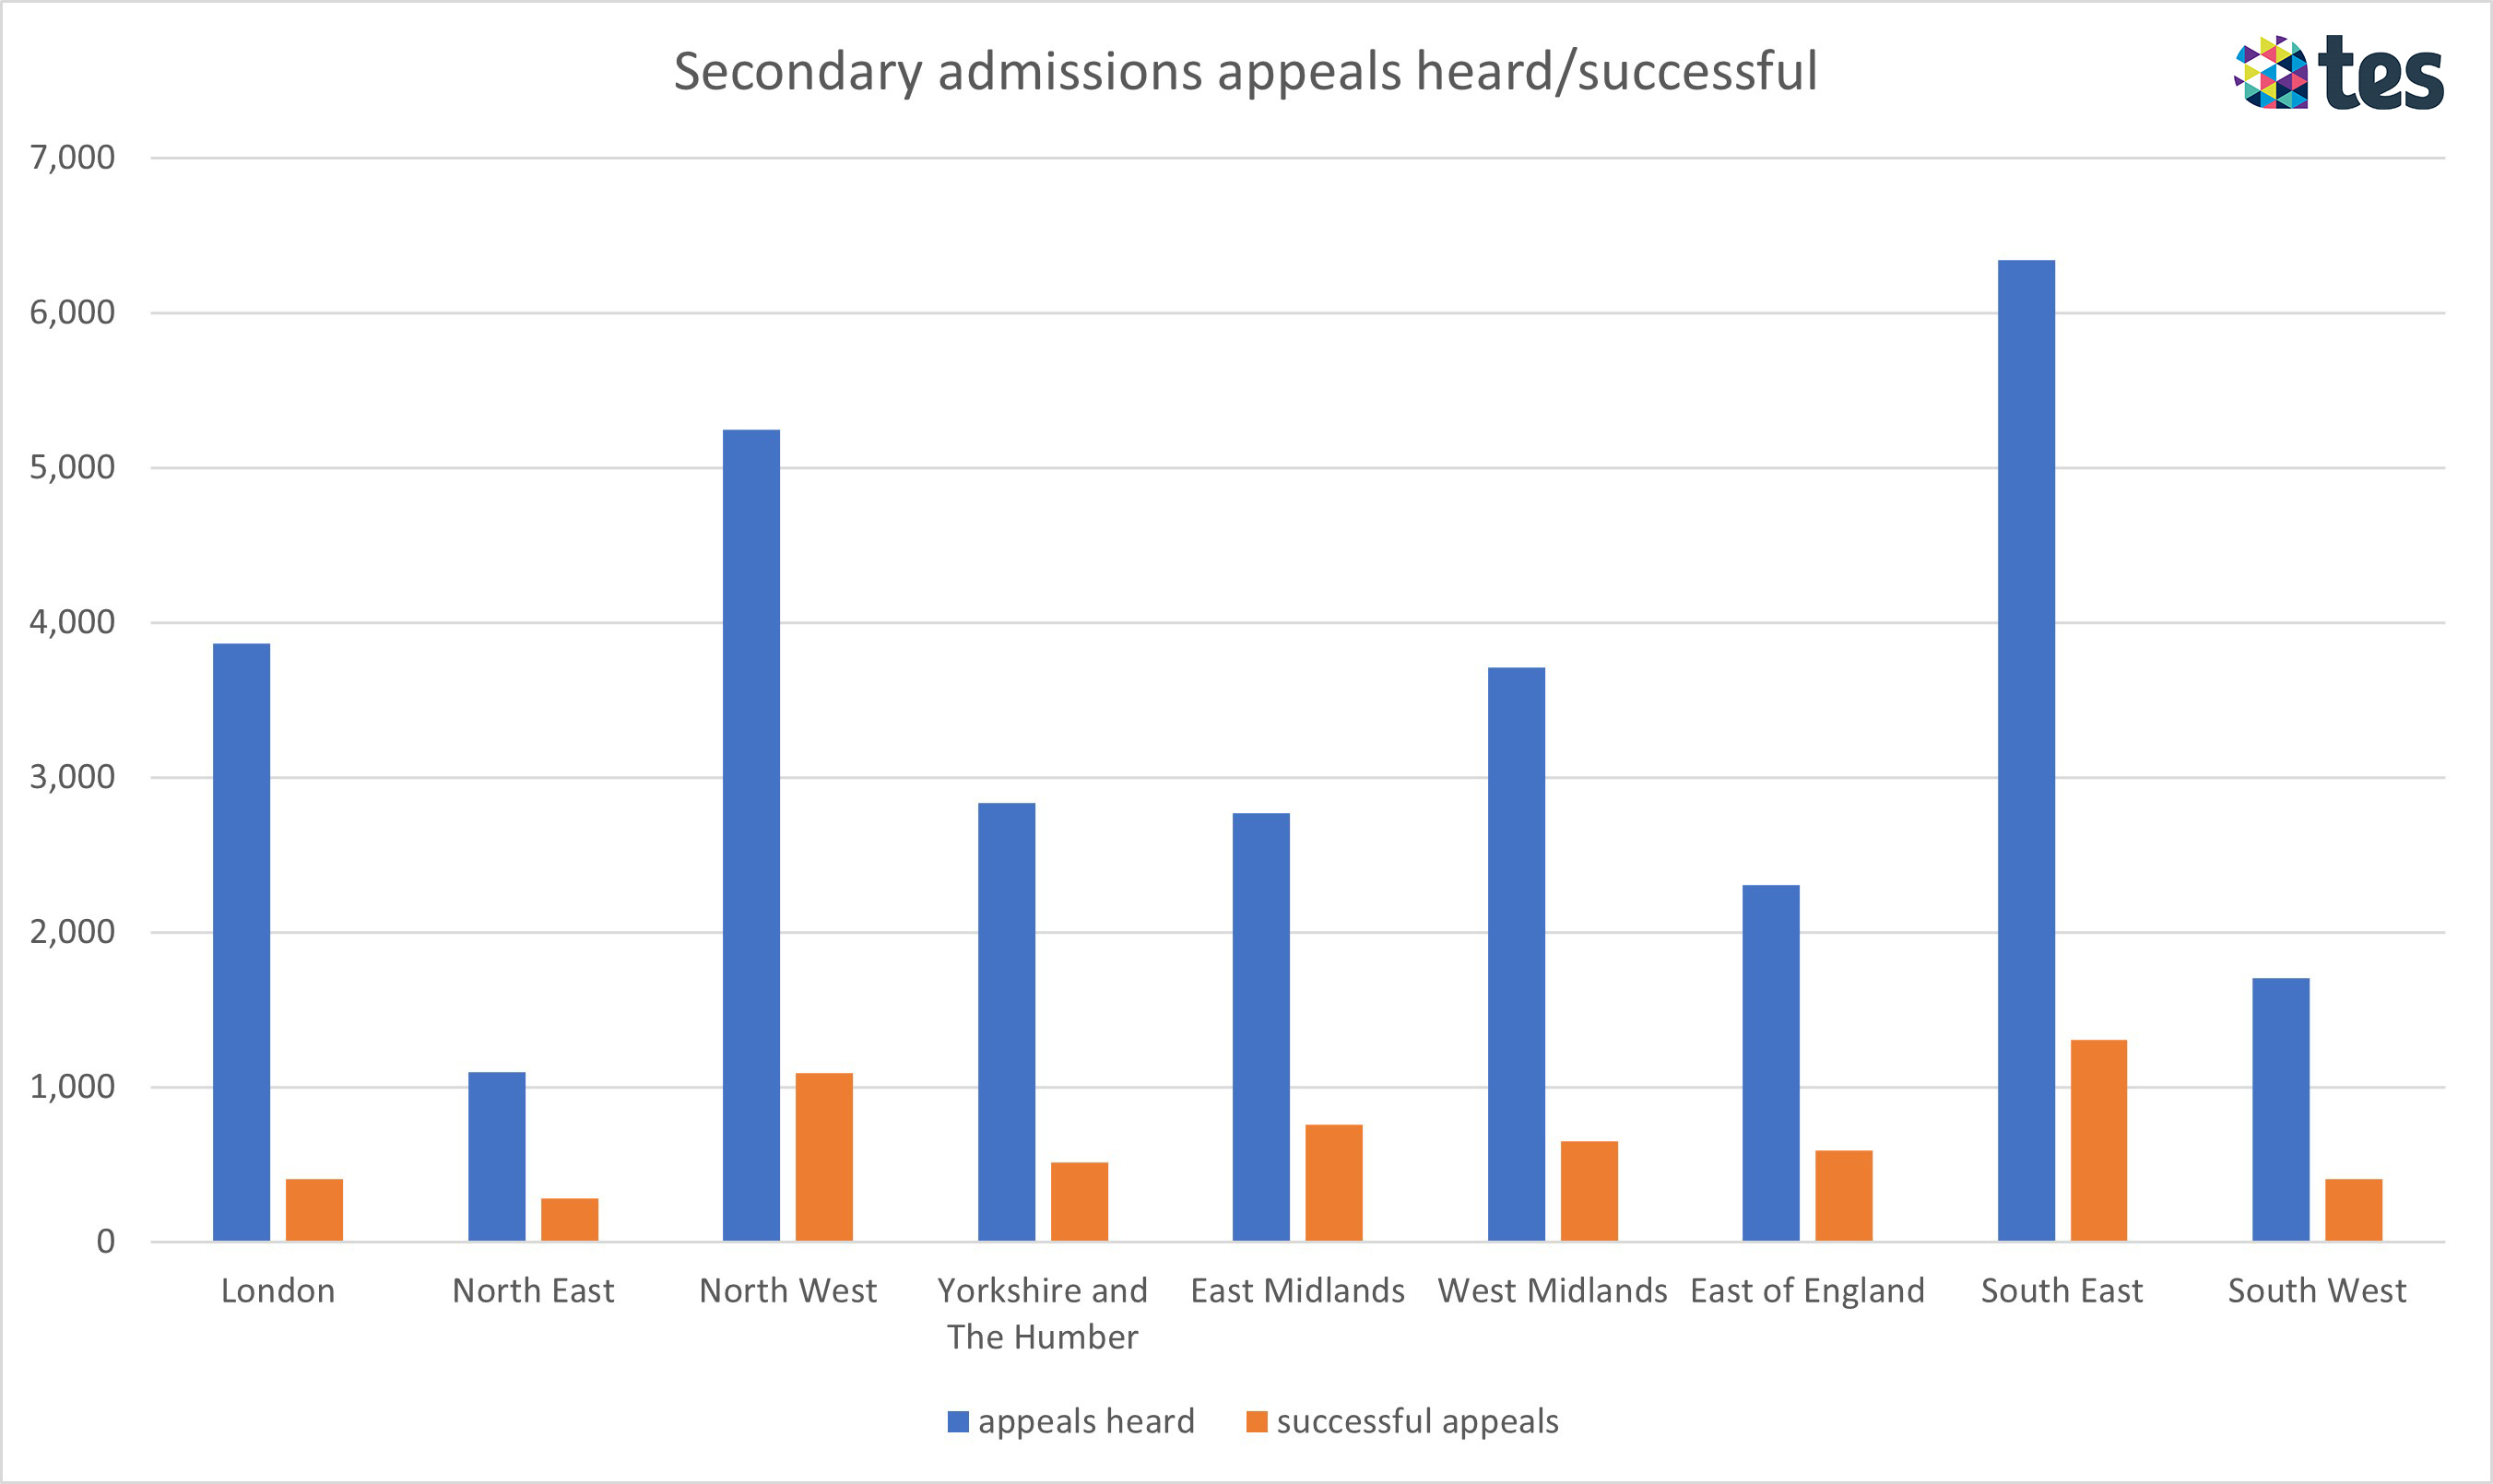 Admissions appeals by region